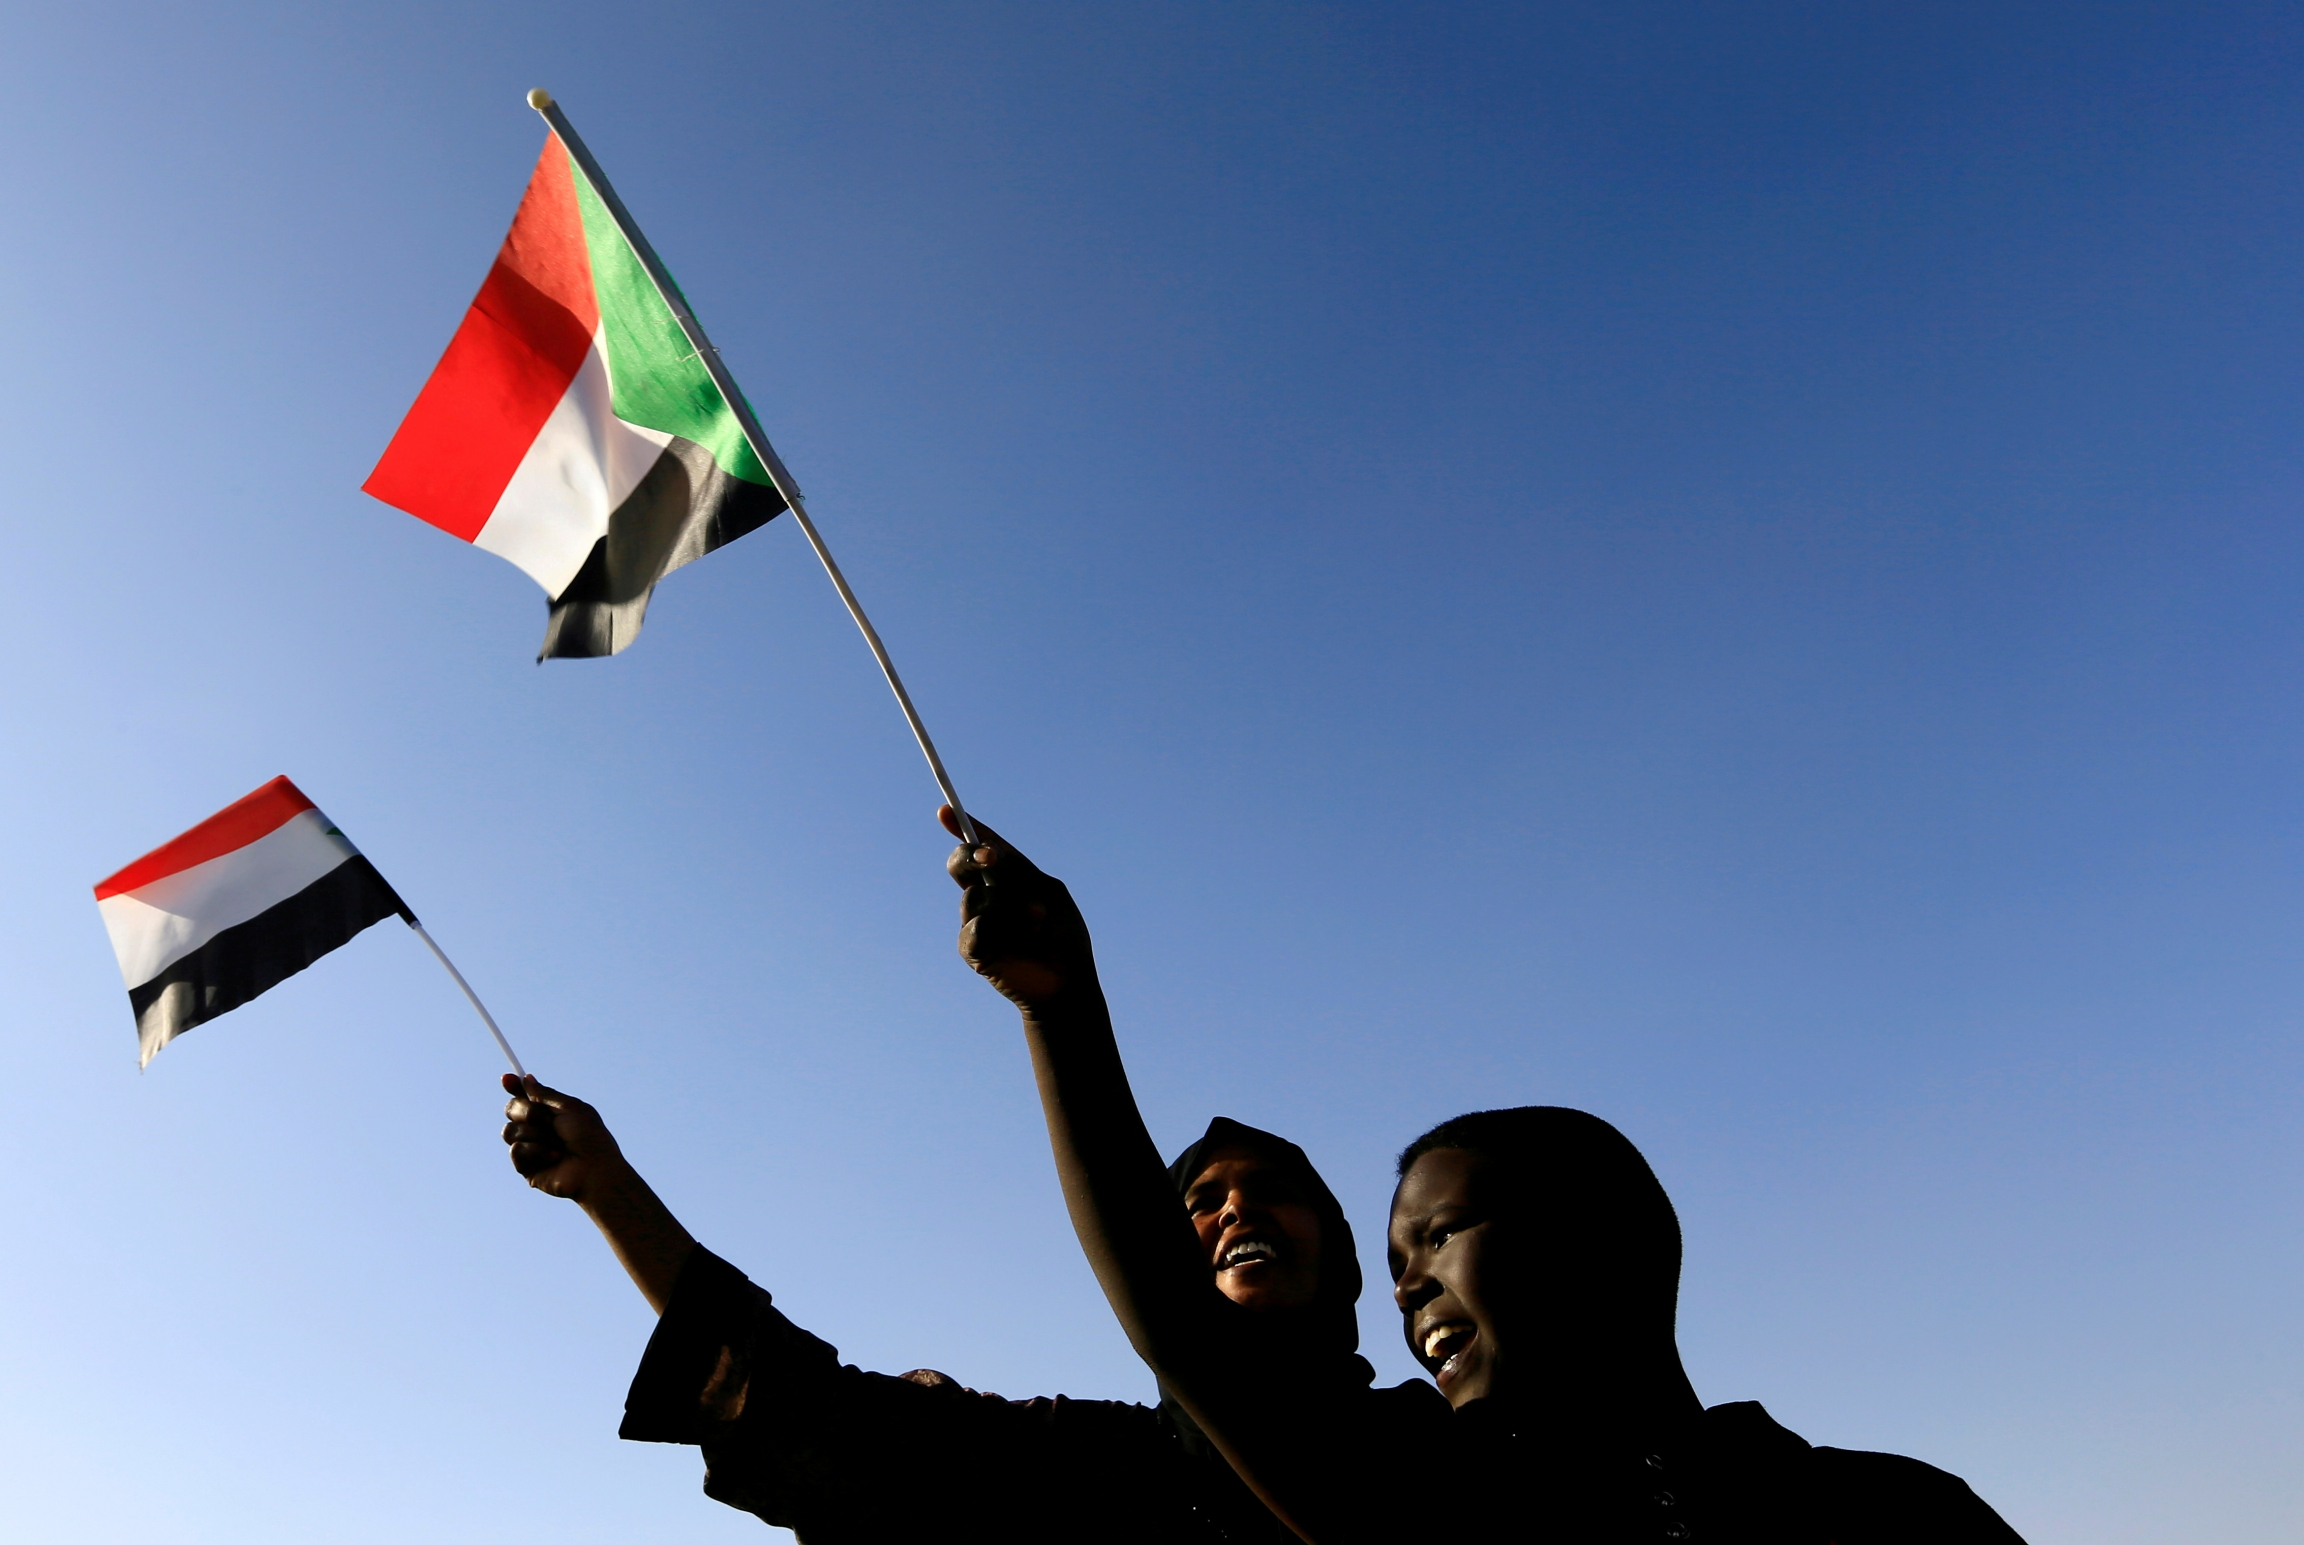 Two Sudanese people wave their flag against blue backdrop